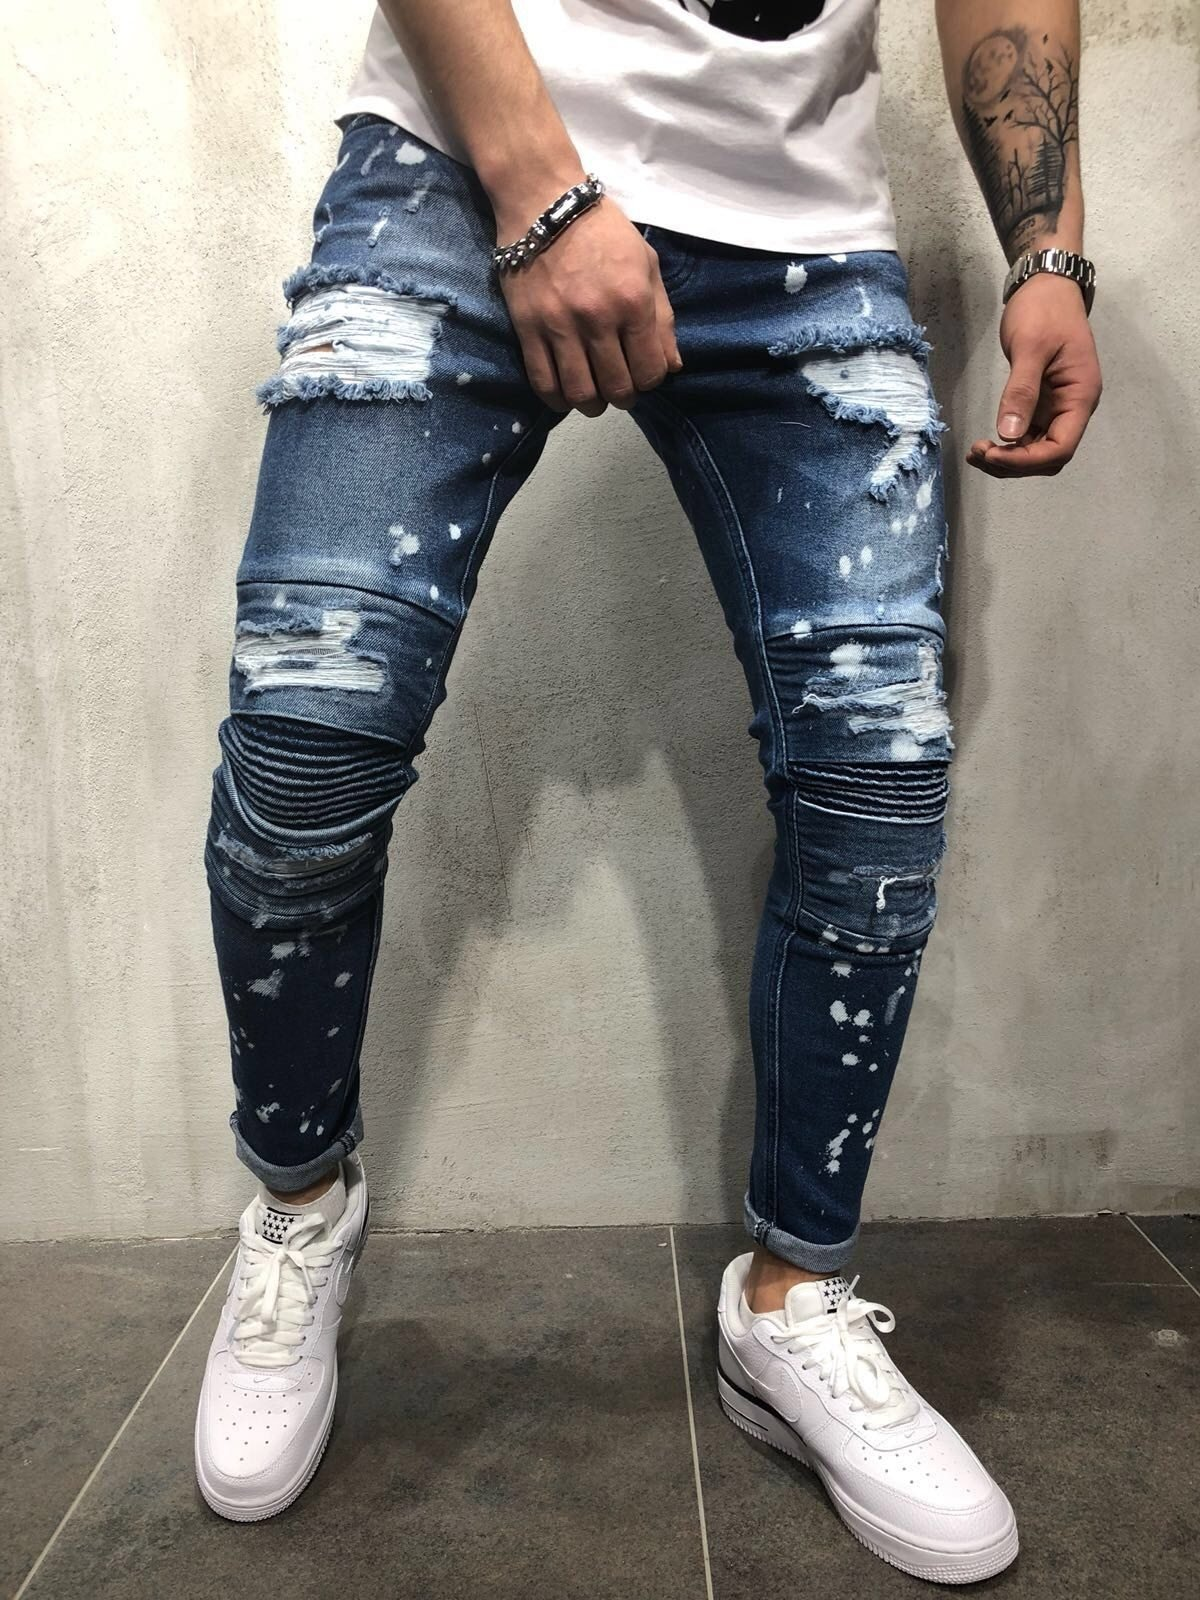 Men's Skinny Jeans with holes - Mens Apparel - COSSTO